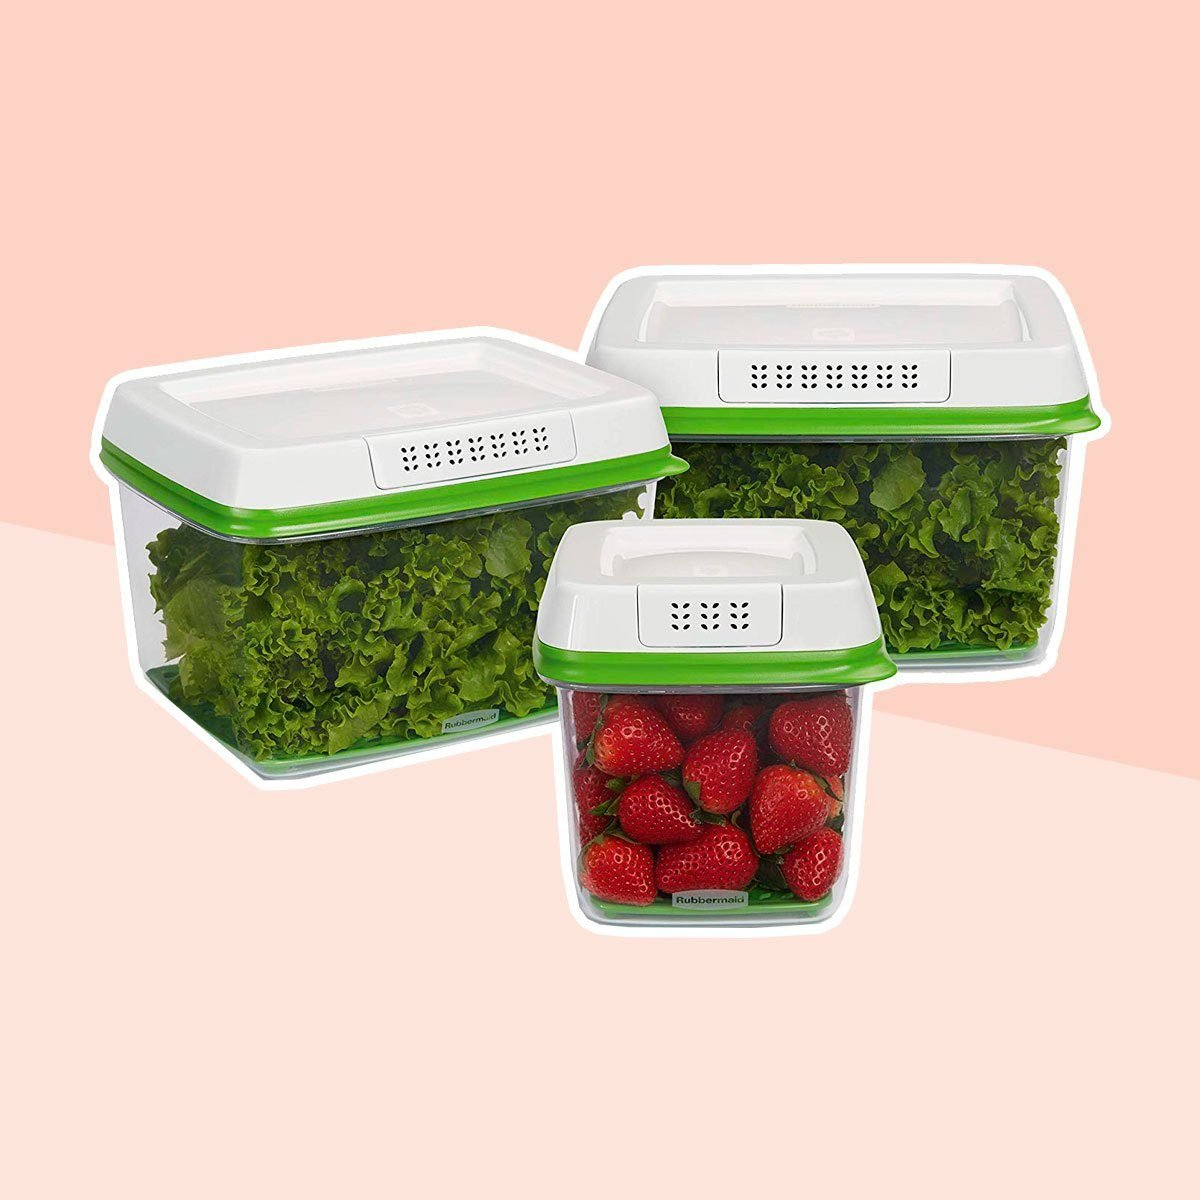 Produce saver container